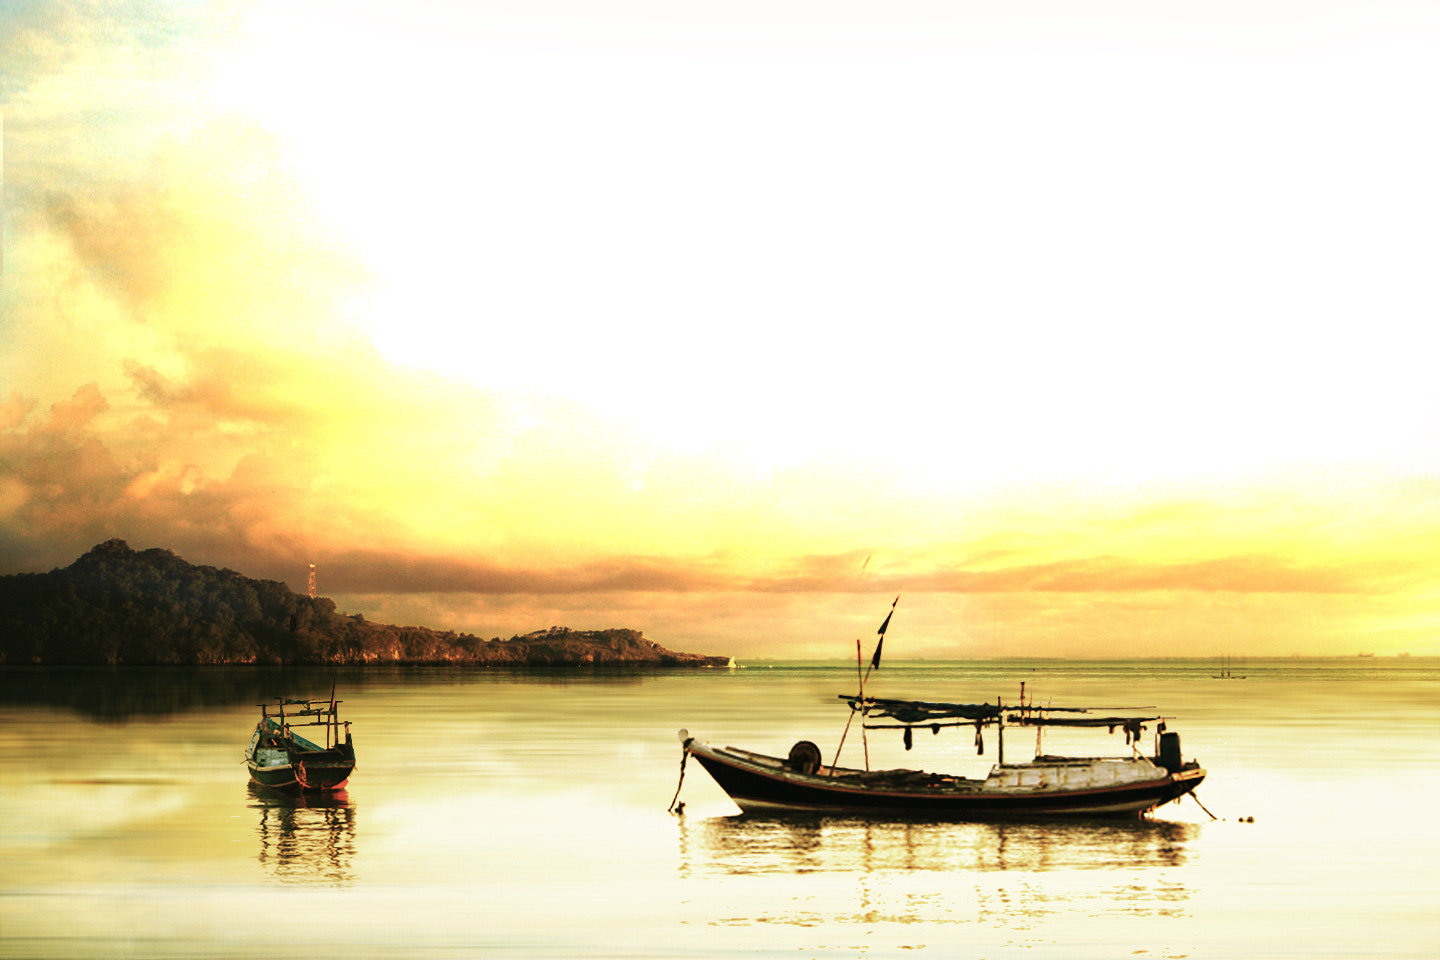 Photograph Witing for Tomorow - 5 by 3 Joko on 500px